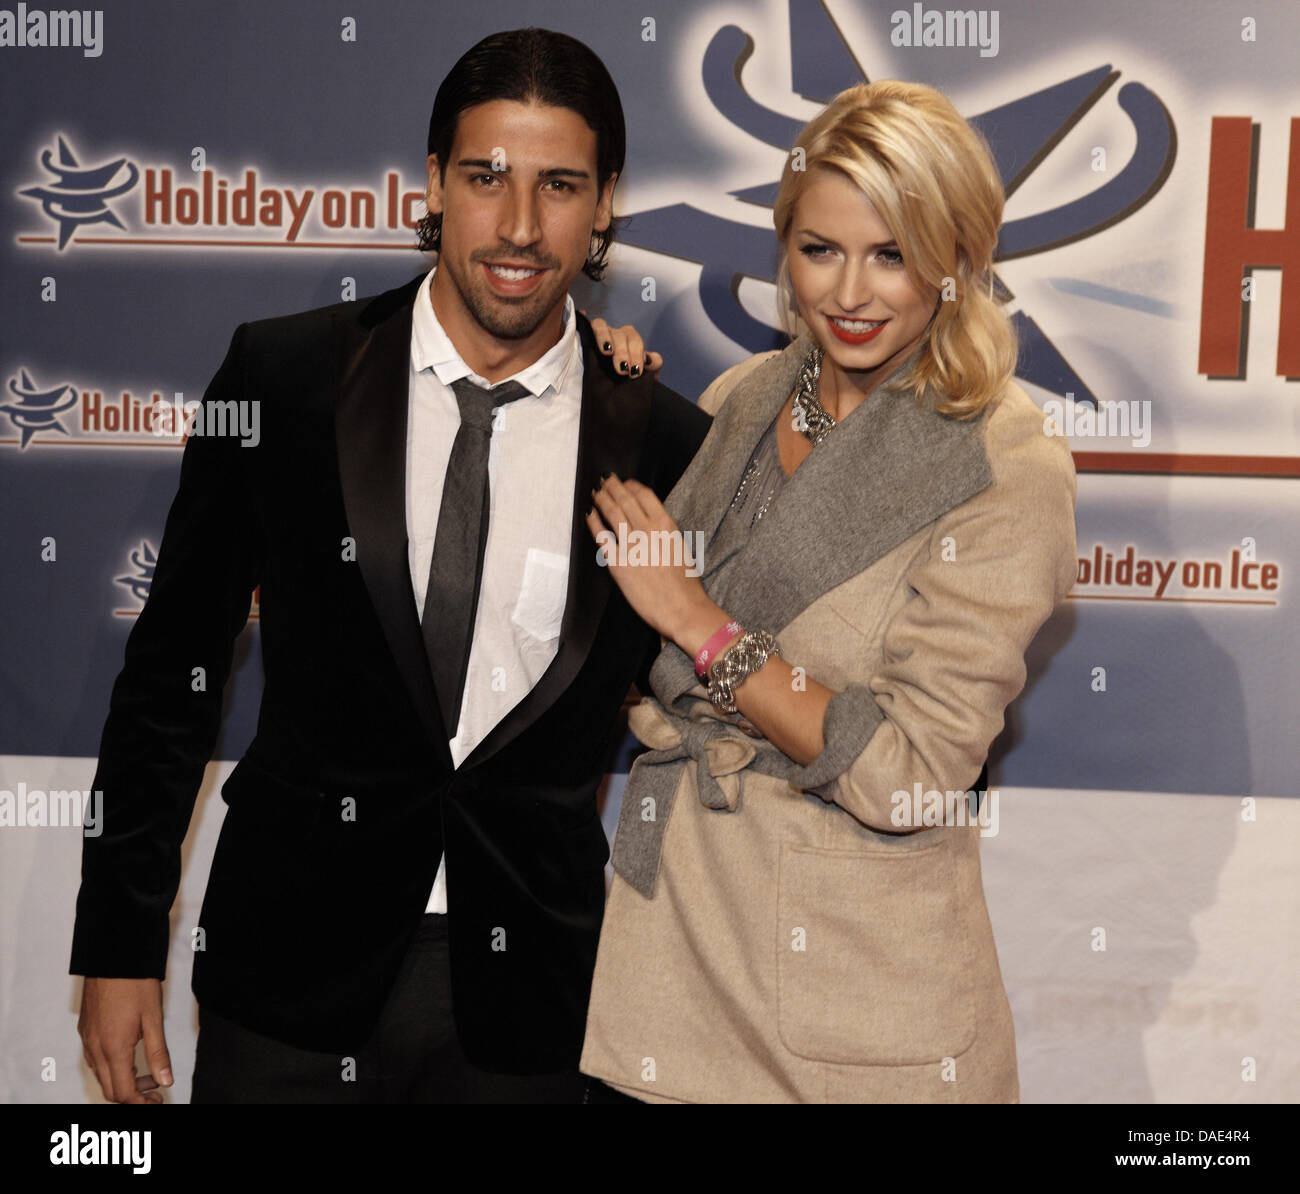 Soccer Player Sami Khedira And His Girlfriend Model Lena